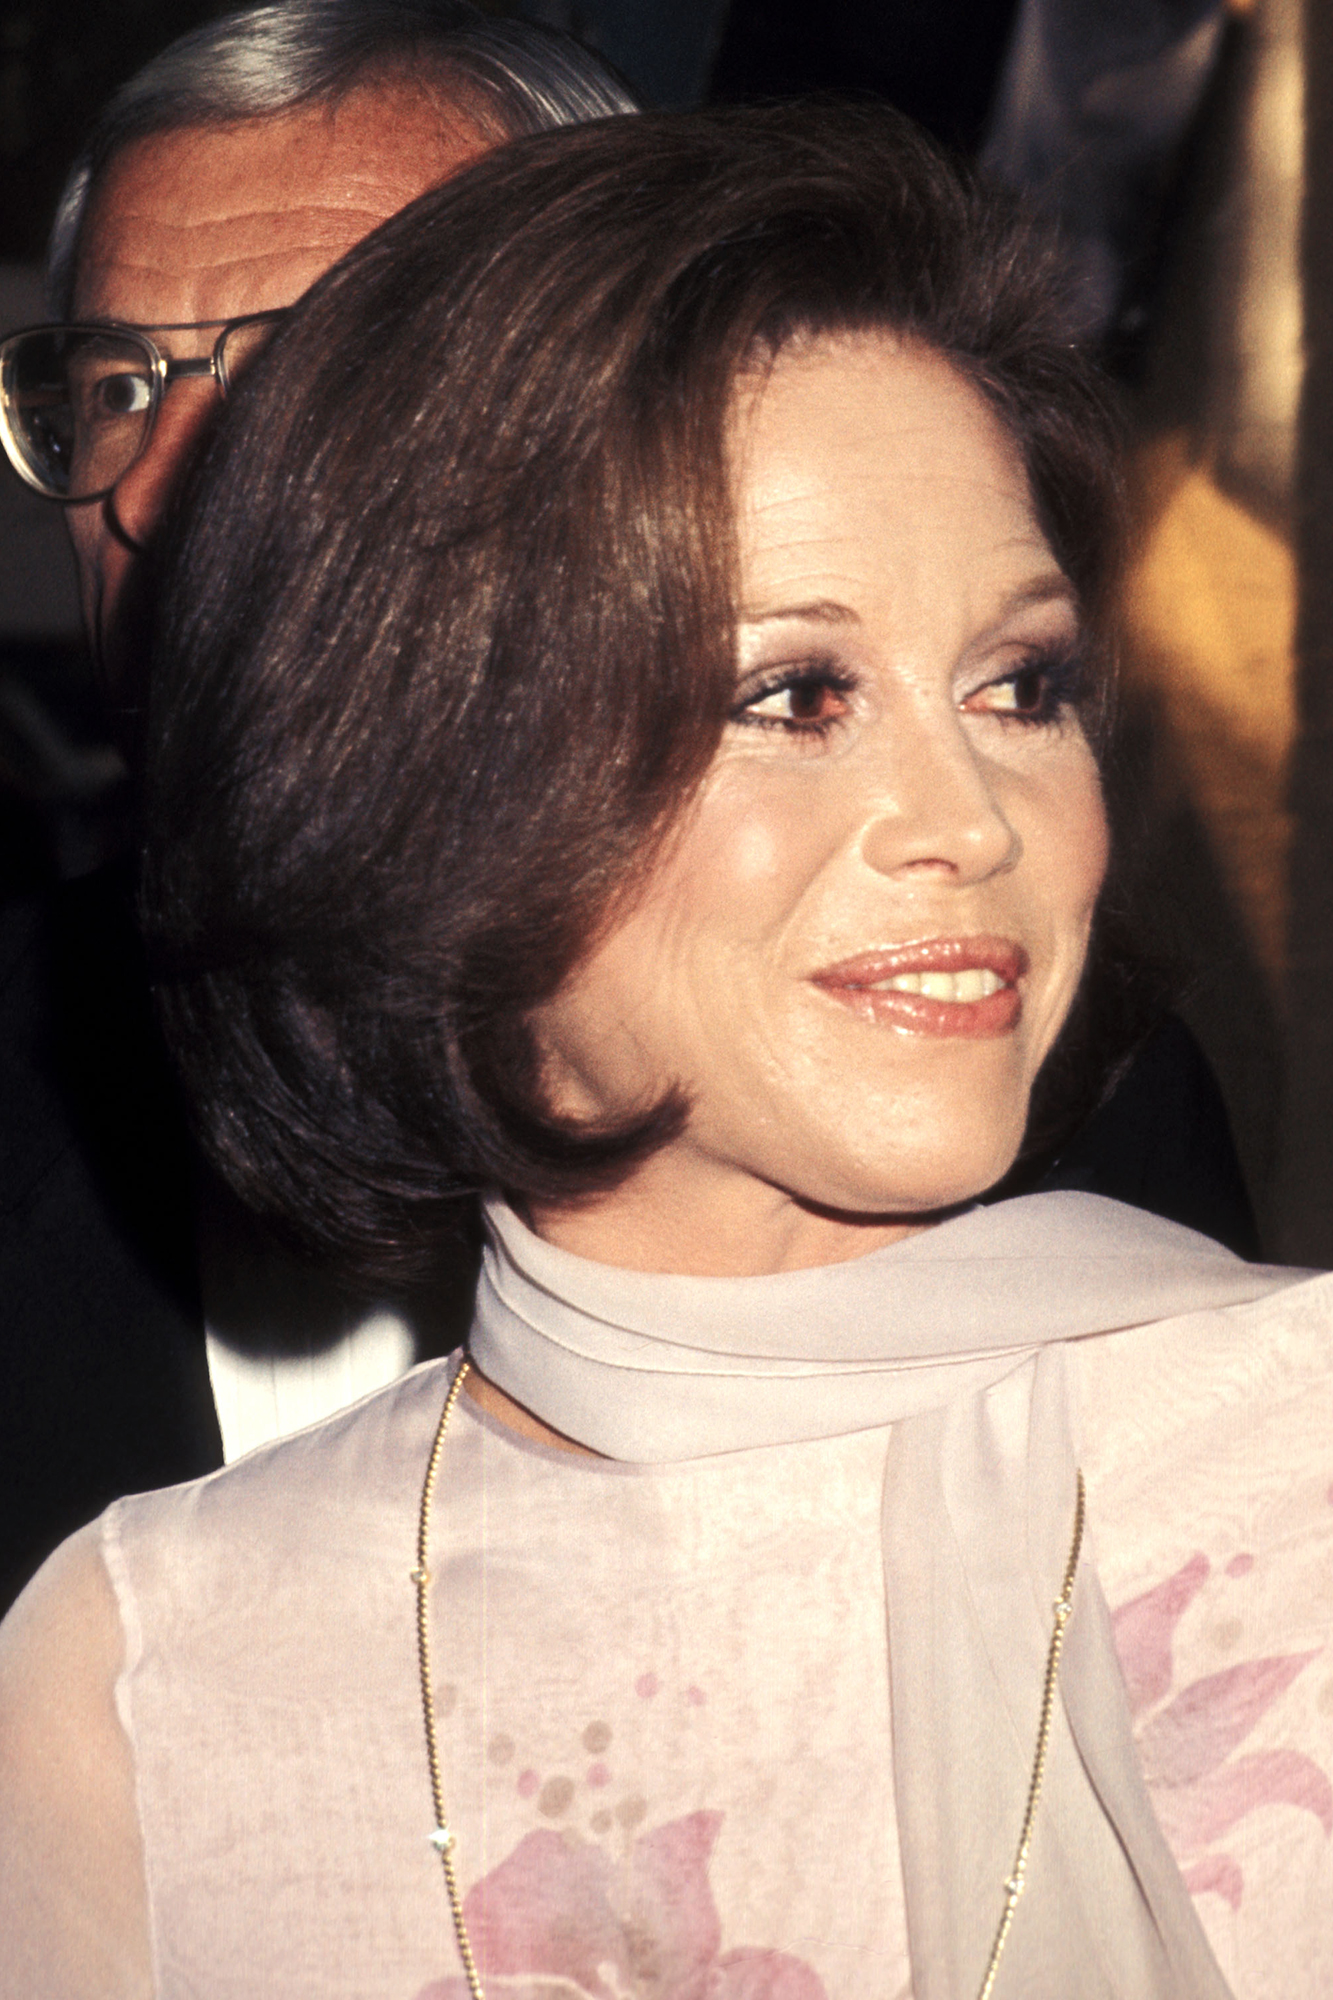 Mary Tyler Moore attends the Third Annual People's Choice Awards, on Feb. 10, 1977 in Hollywood, Calif.